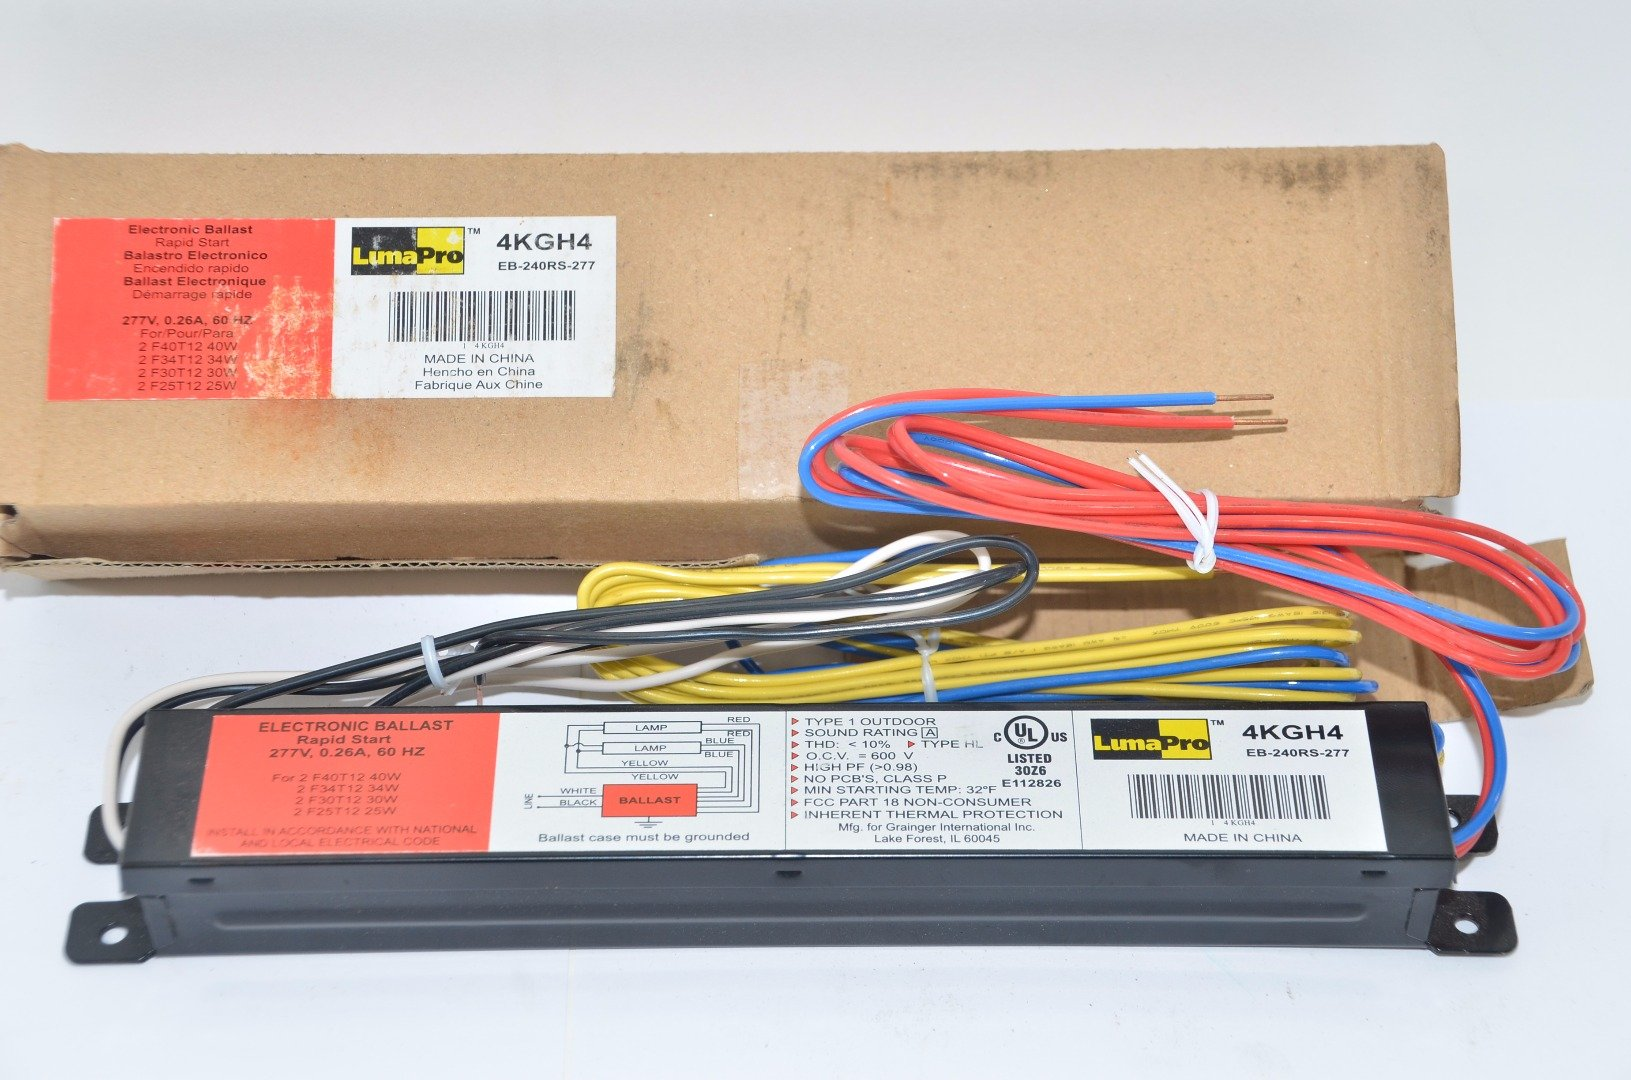 LumaPro 4KGH4 Ballast, Electronic, T12, 0.26 to 0.62 Amps